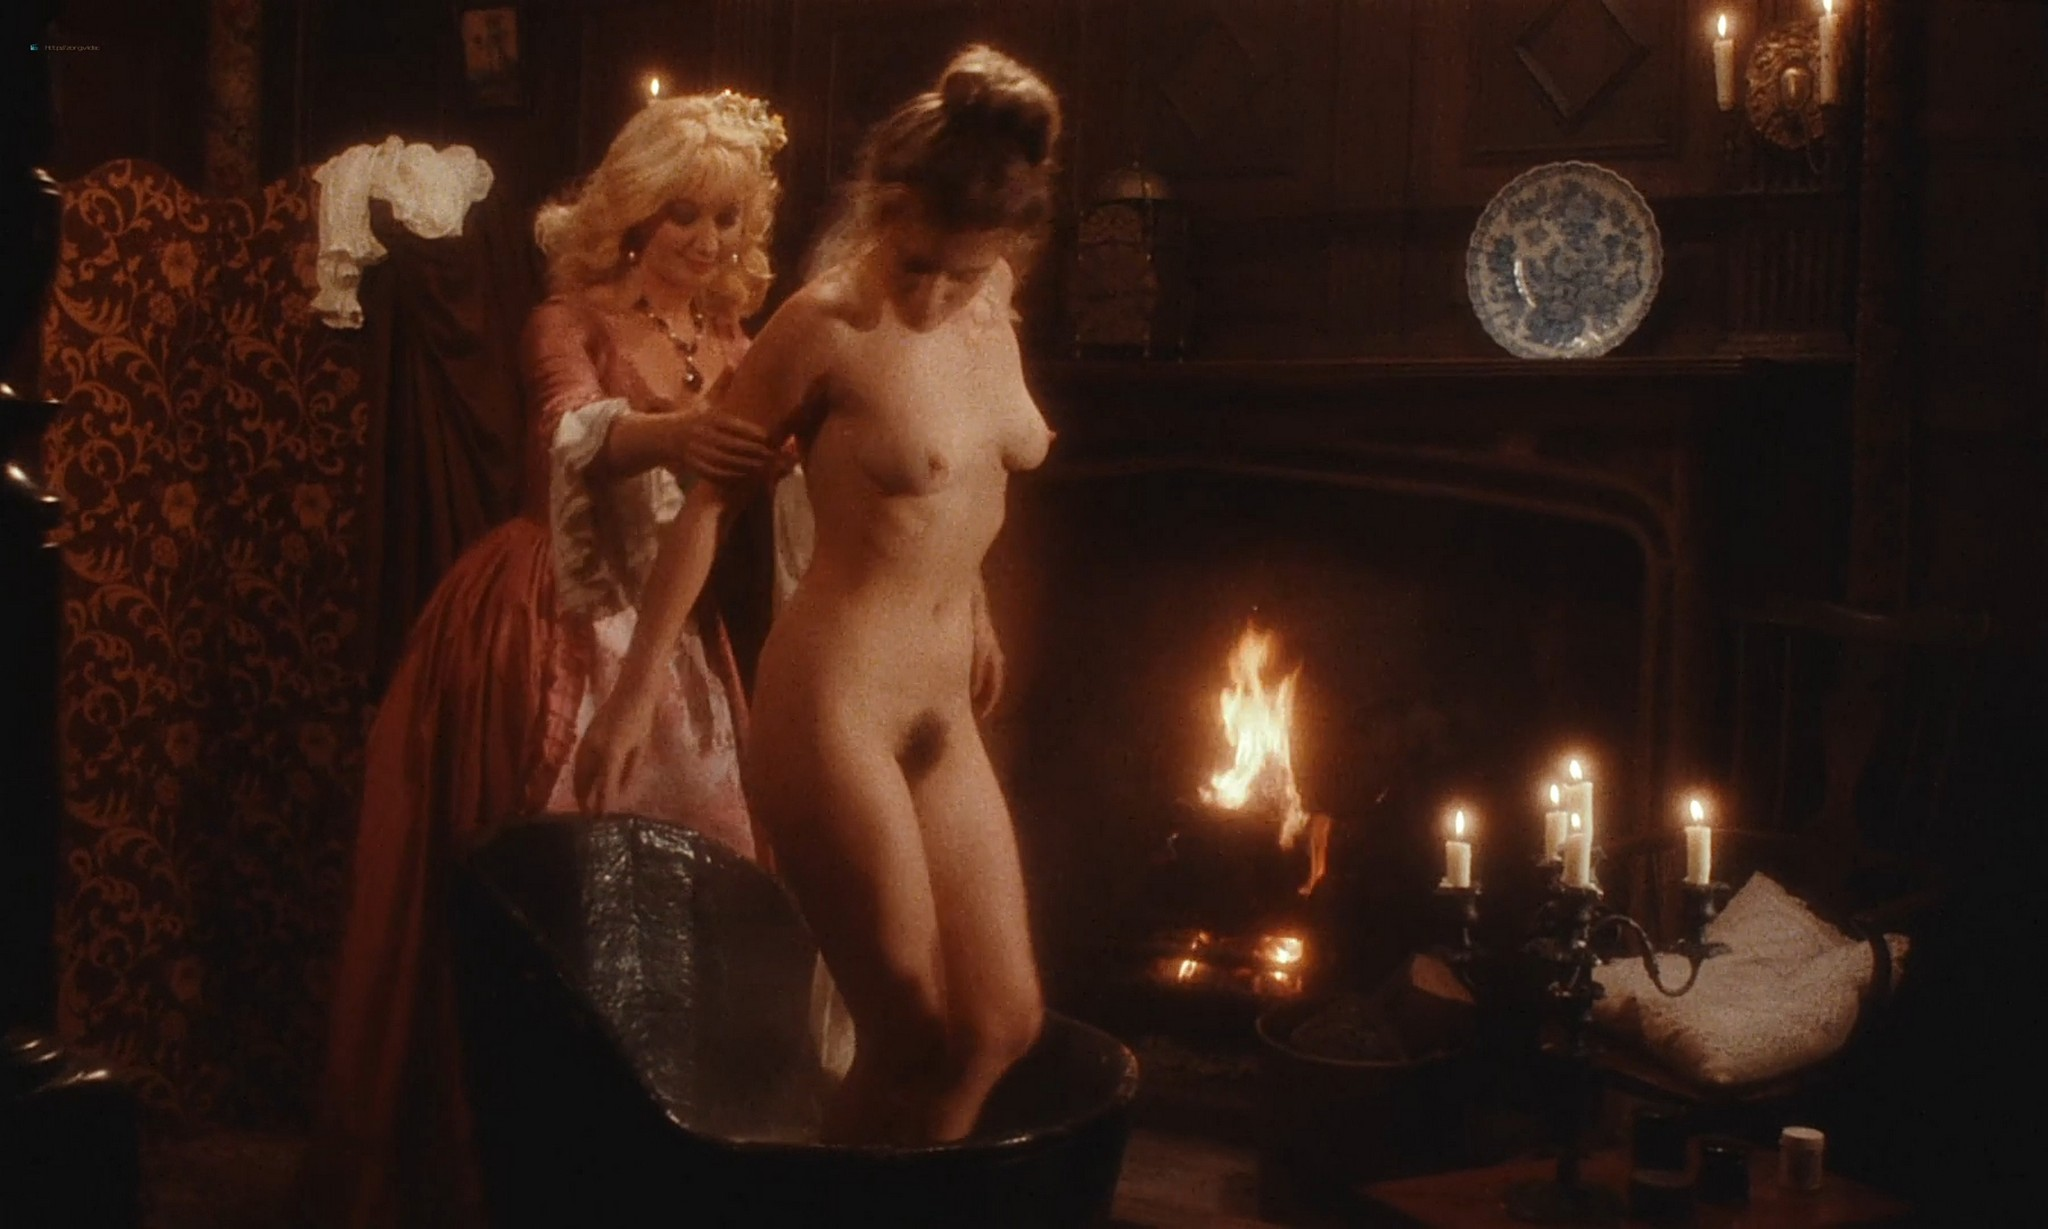 Lisa Foster nude full frontal hot sex Maria Harper and others nude sex etc Fanny Hill 1983 1080p BluRay